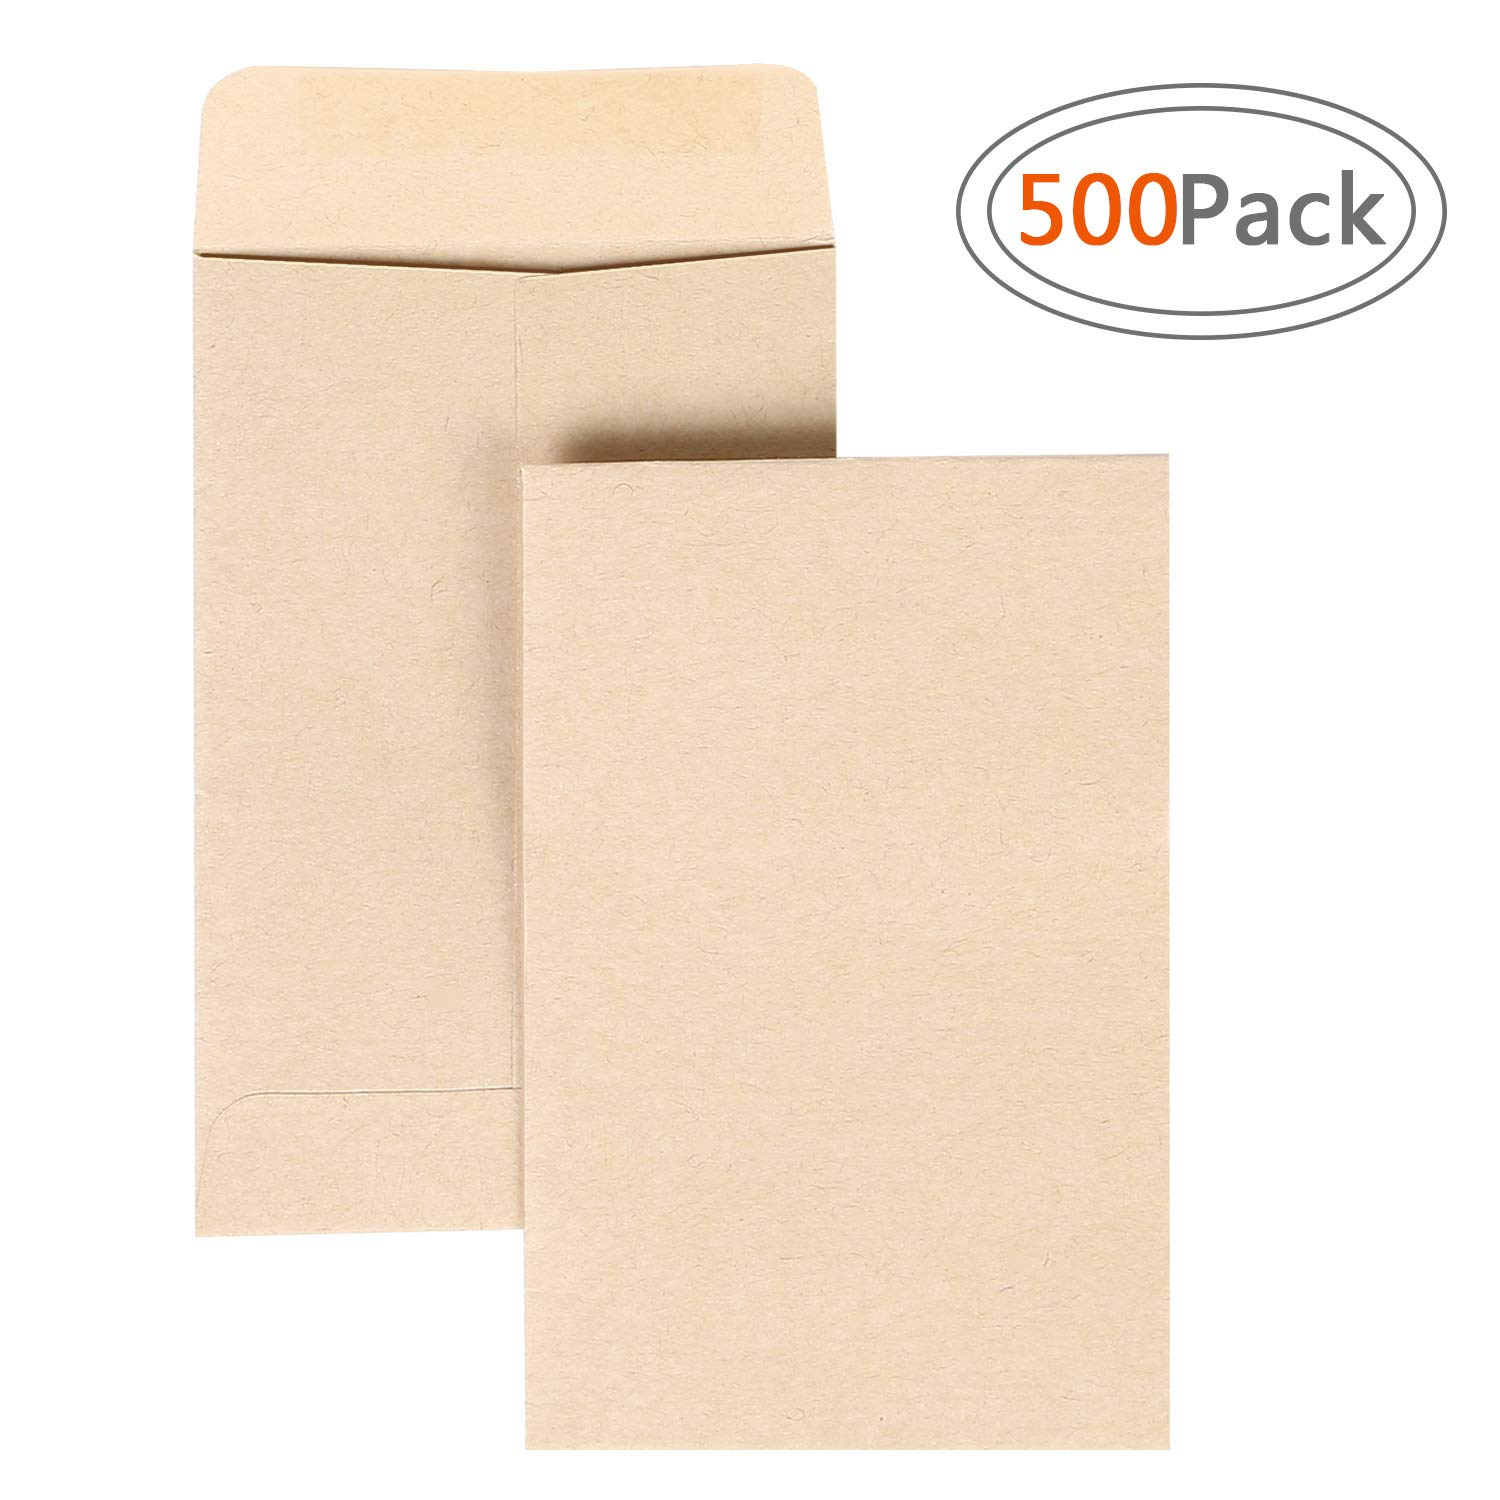 Road 500pcs Brown Kraft Mini Coin Envelopes (2.25 x 3.5 inch) for Wedding, Birthday Party Gift Supplies by Road